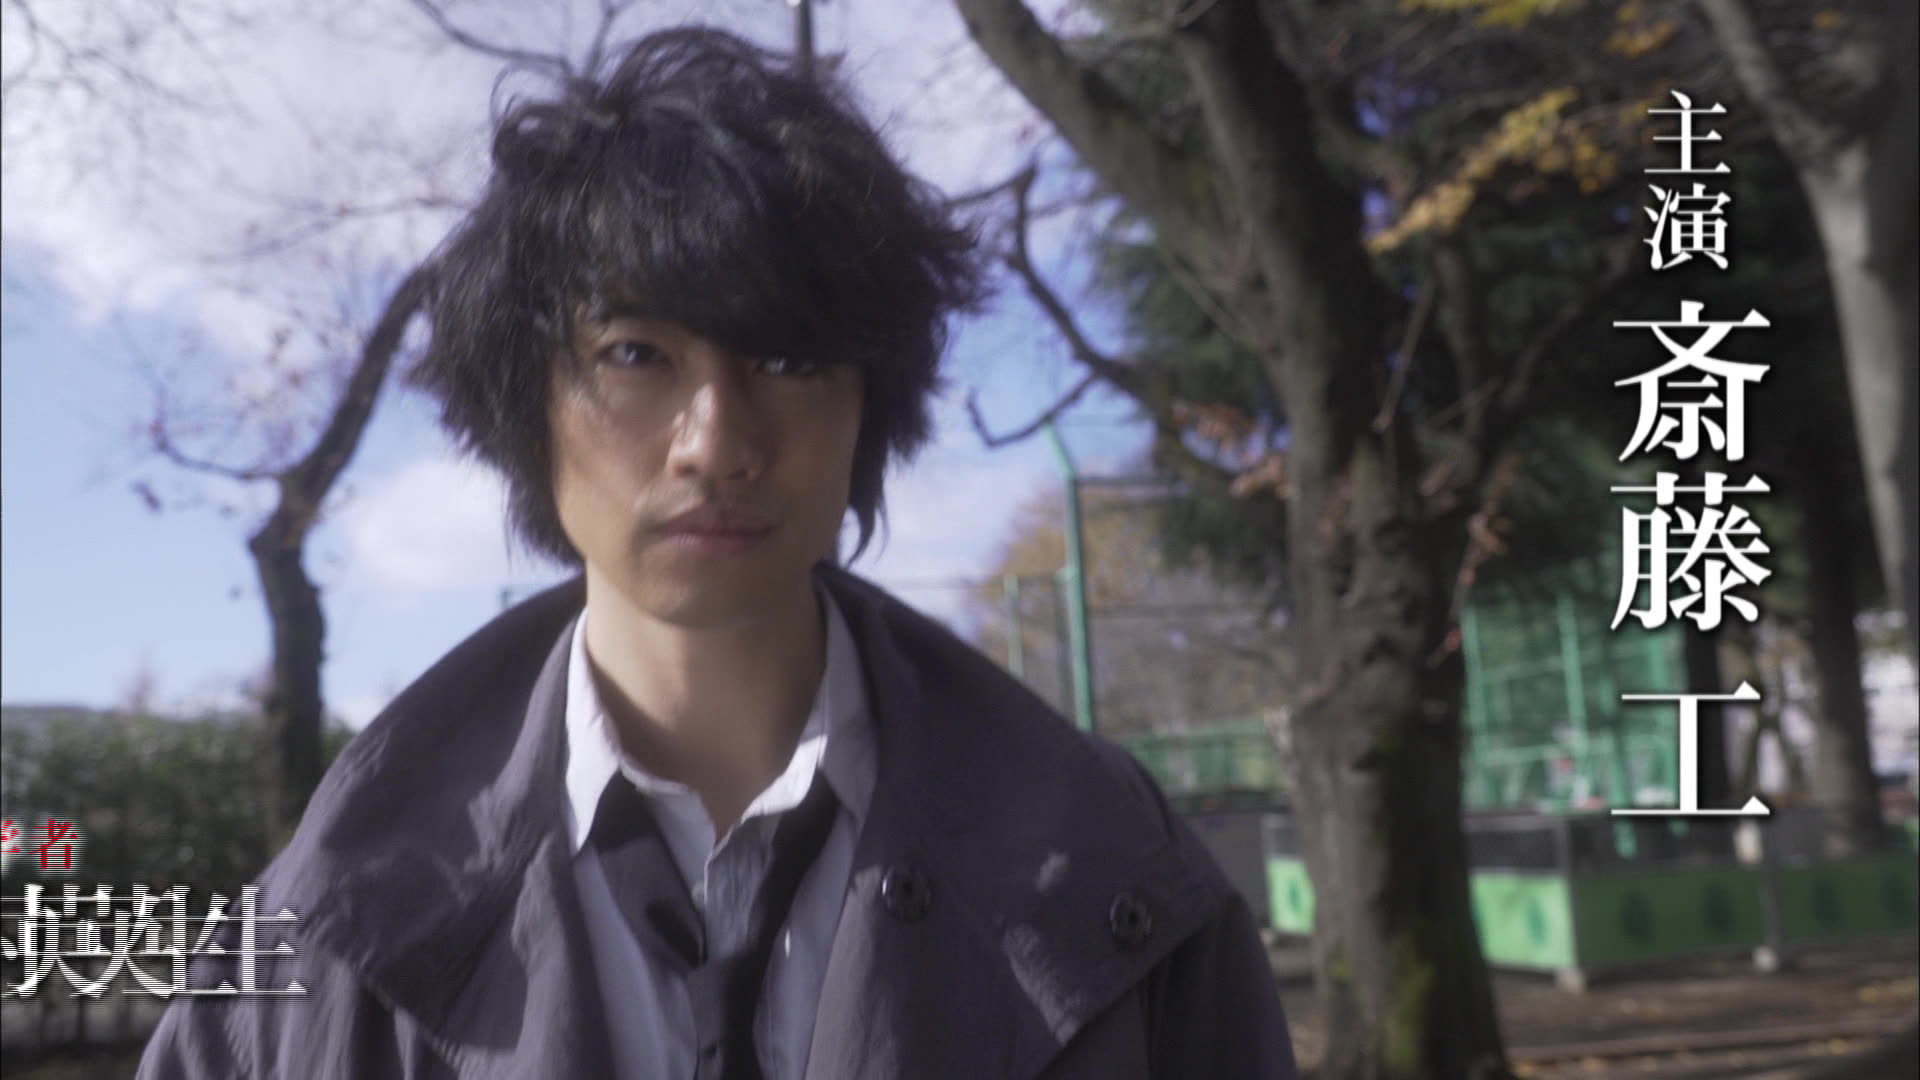 Trailer: Criminologist Himura and Mystery Writer Arisugawa